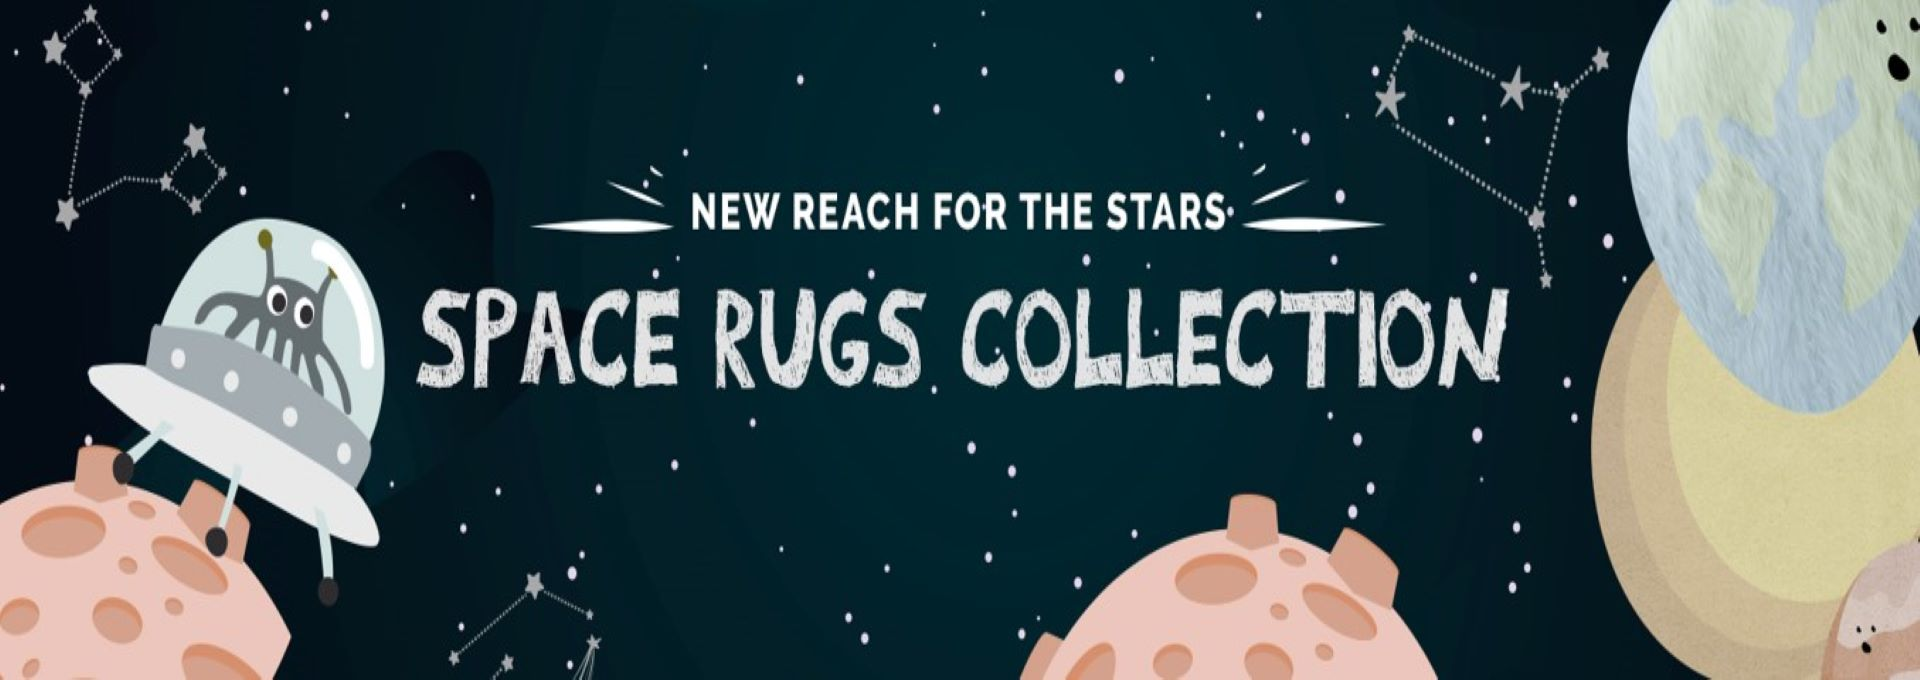 space rugs collection